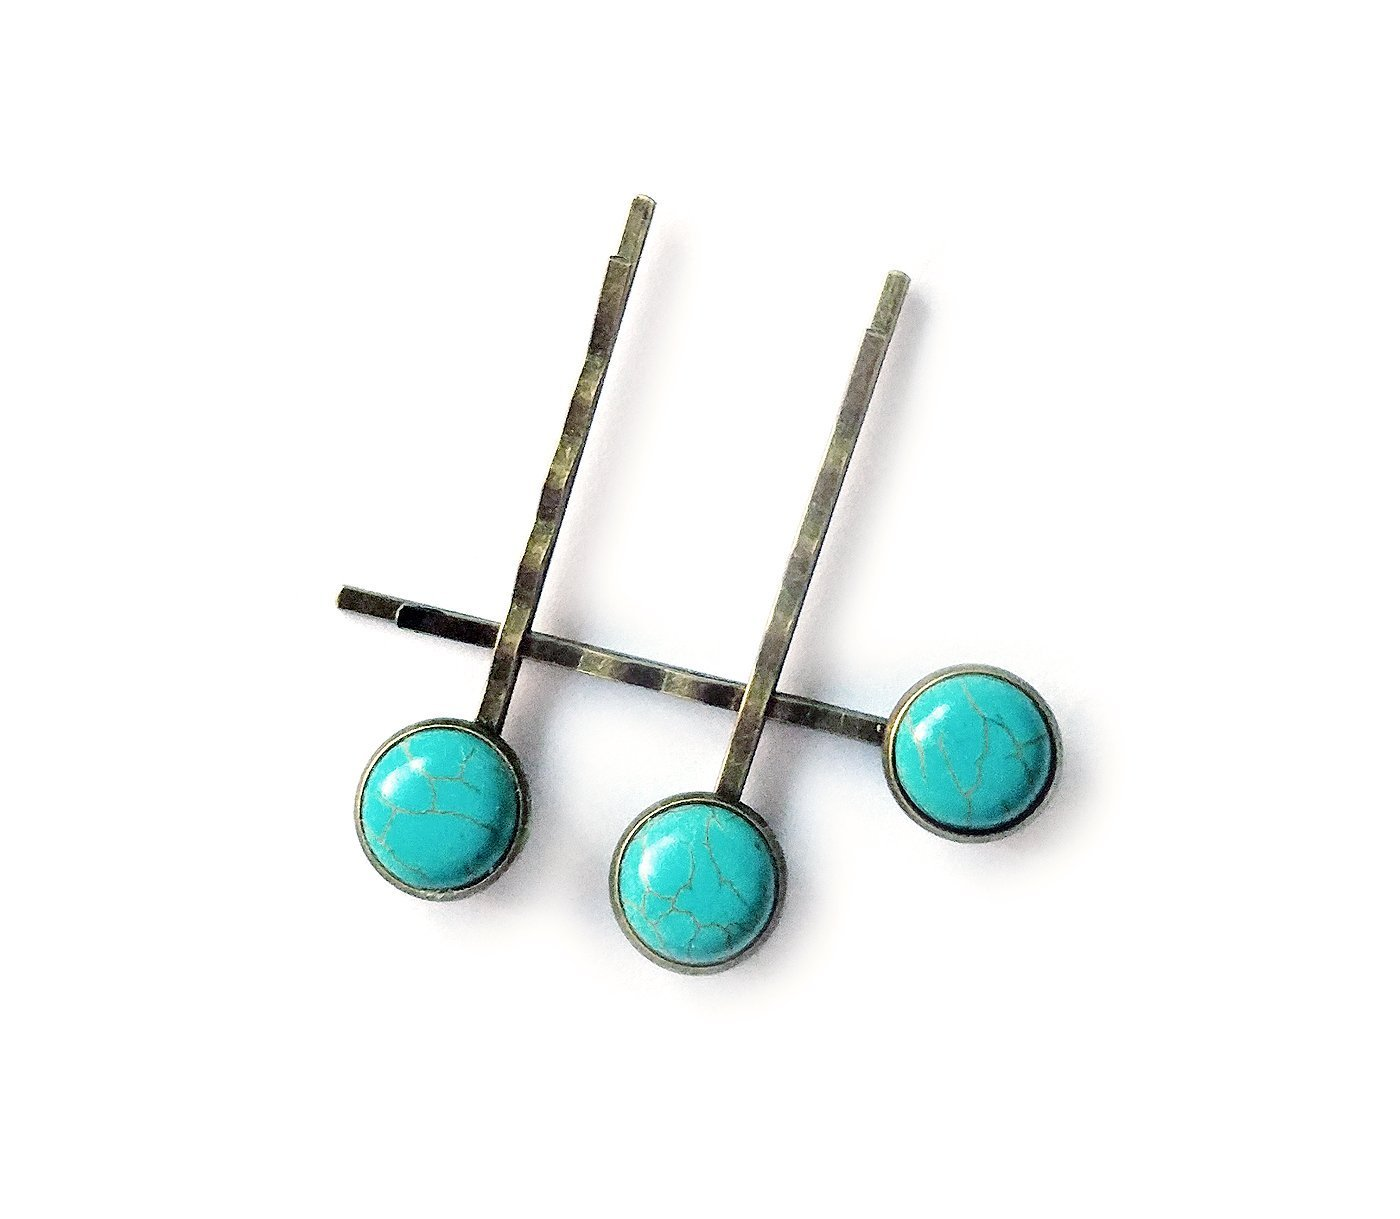 Turquoise Hair Clips - Set of three high quality bronze bobby pins - modern minimal style